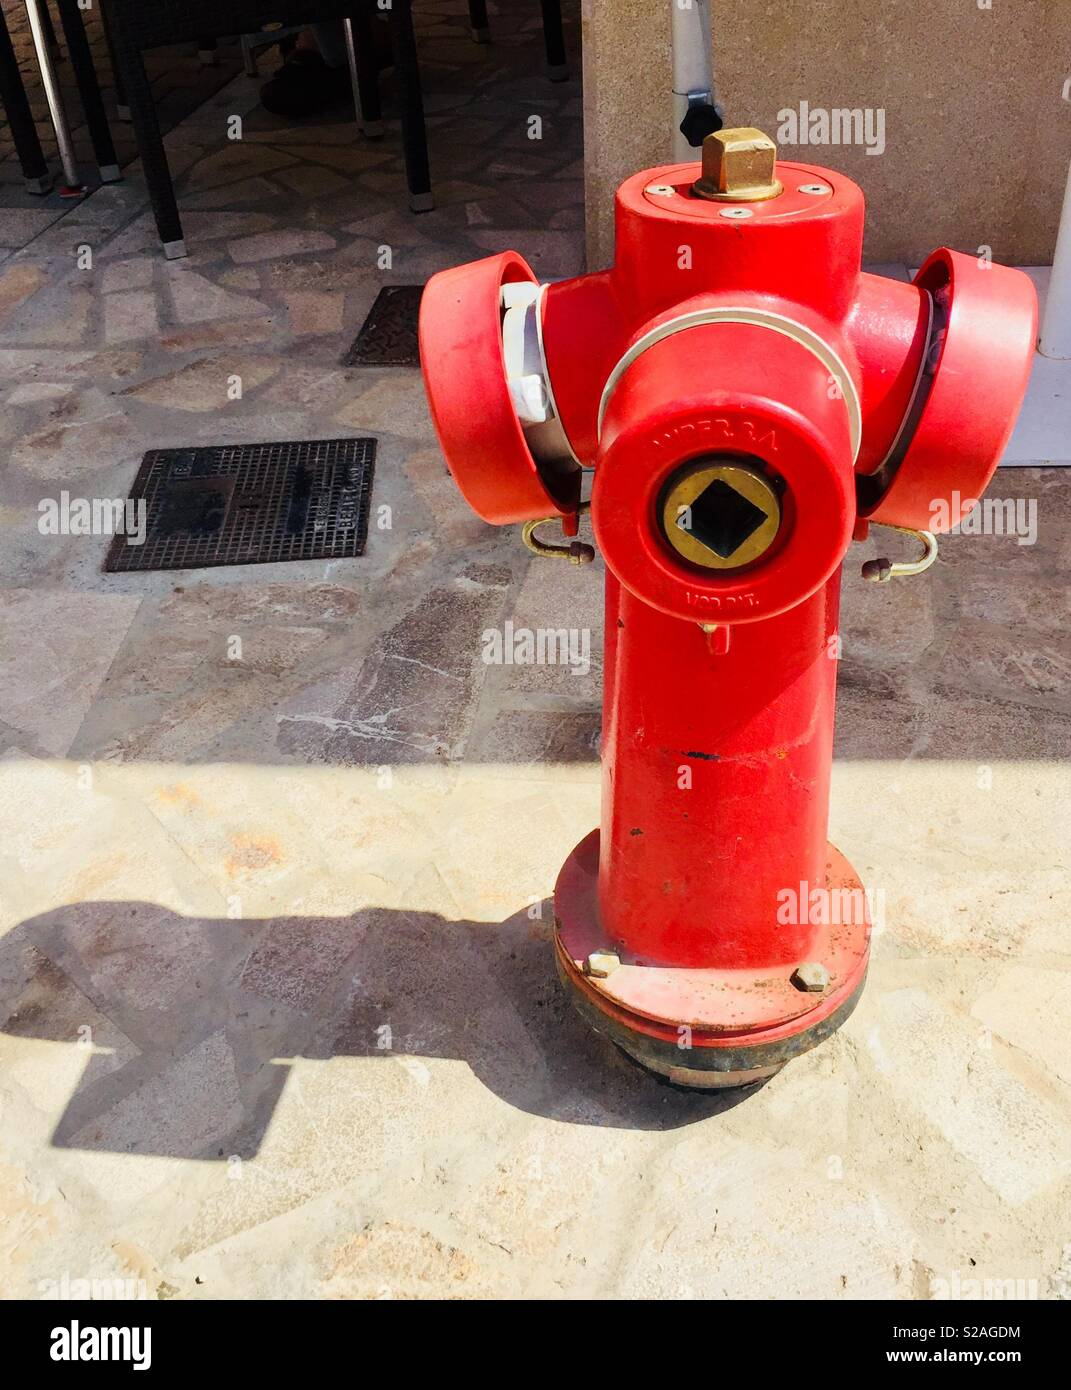 Water hydrant - Stock Image